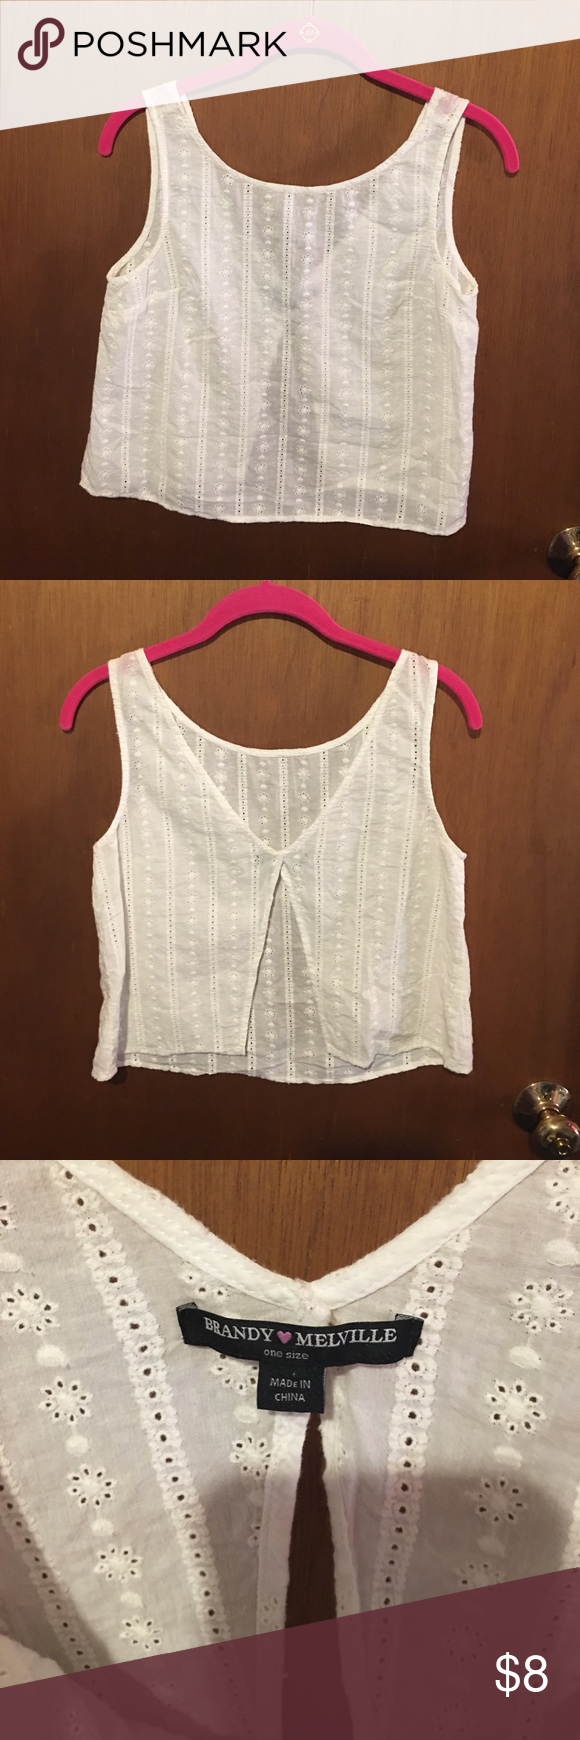 Brandy Melville top Good condition. Bundle to save ☺ Brandy Melville Tops Tank Tops